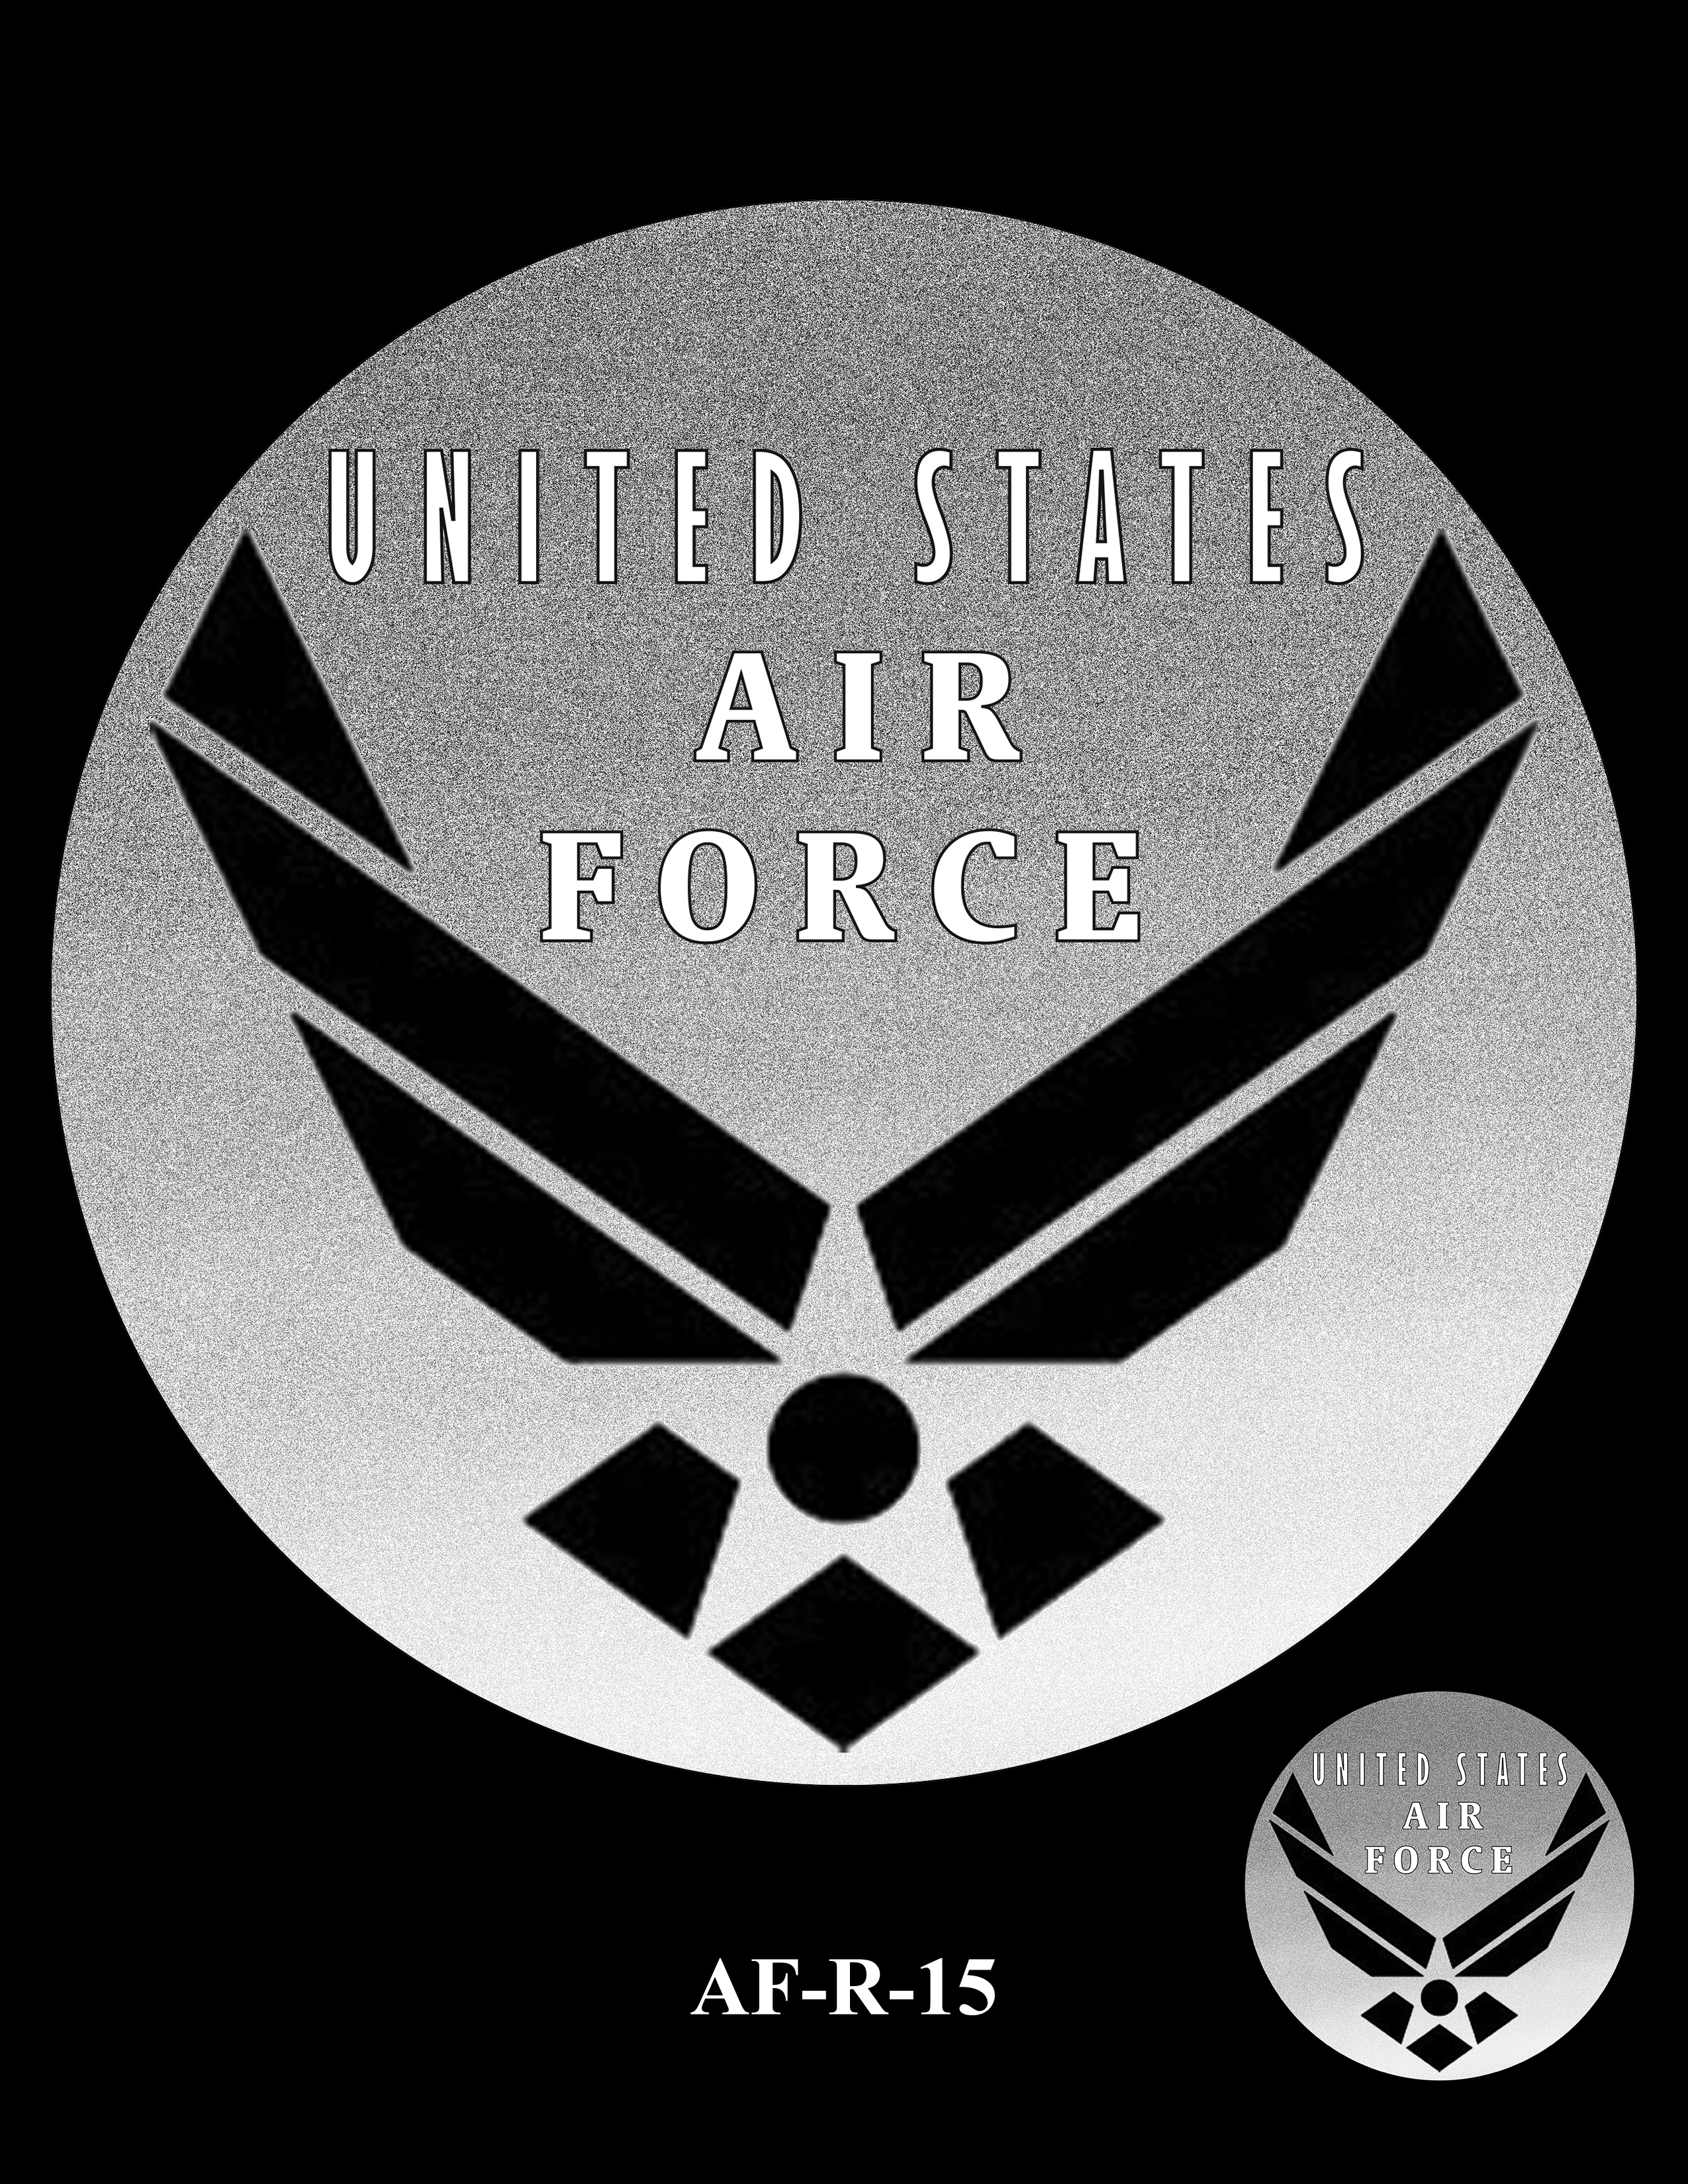 AF-R-15 -- Armed Forces Medal - Air Force